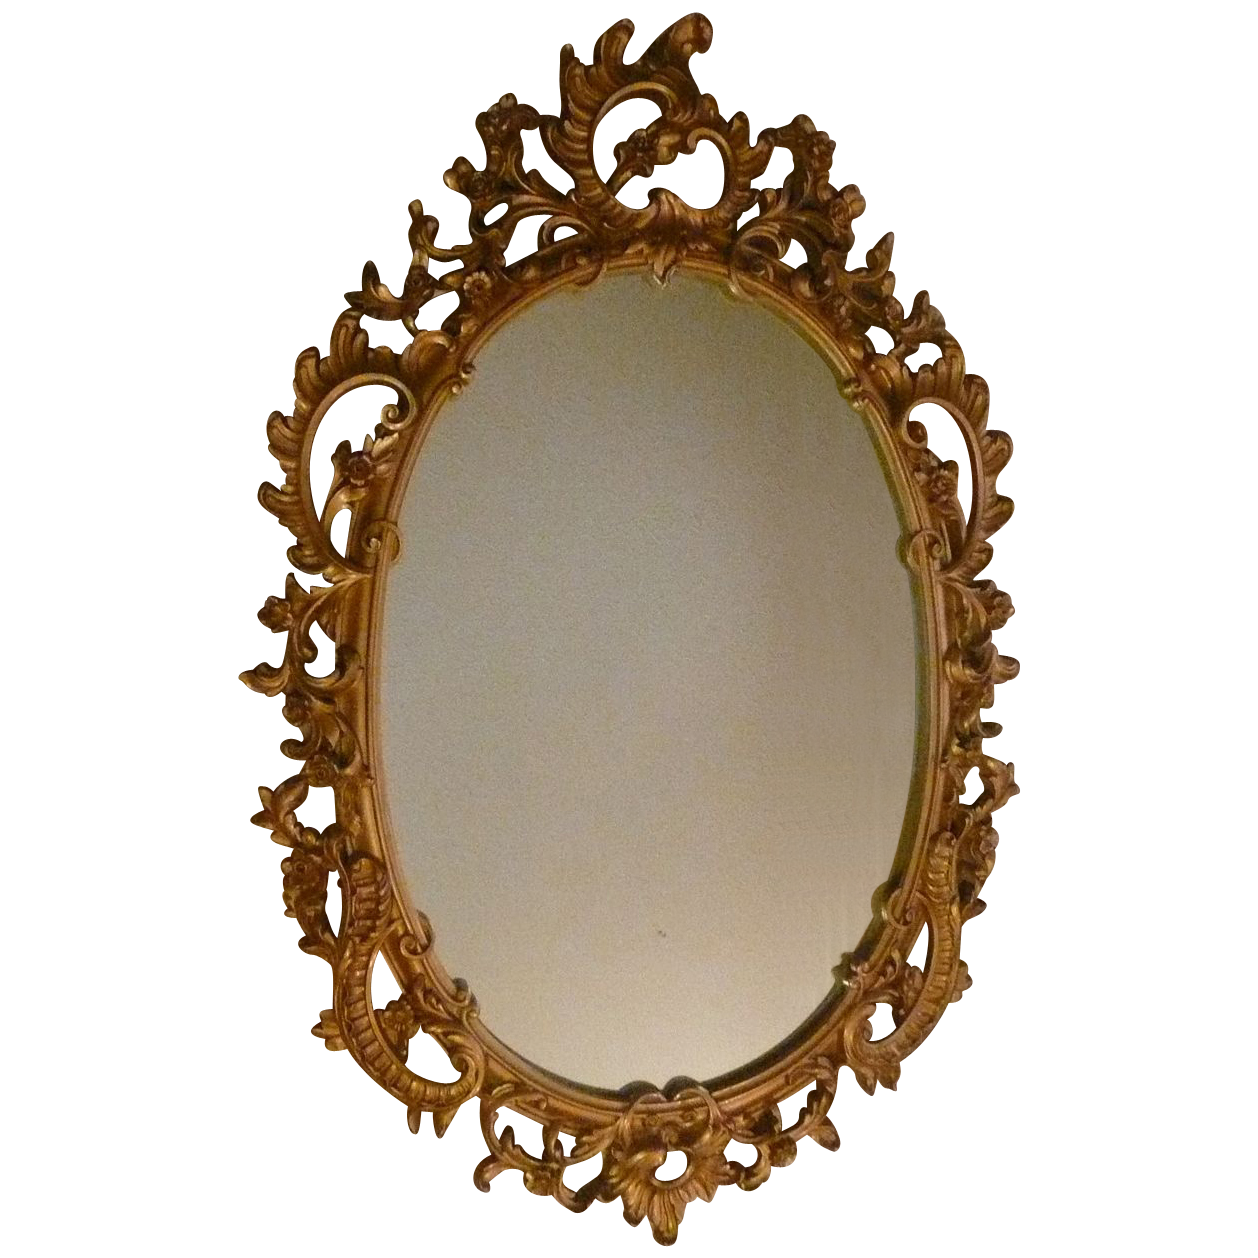 Syroco Wood Composite Mirror With Ornate Scroll From